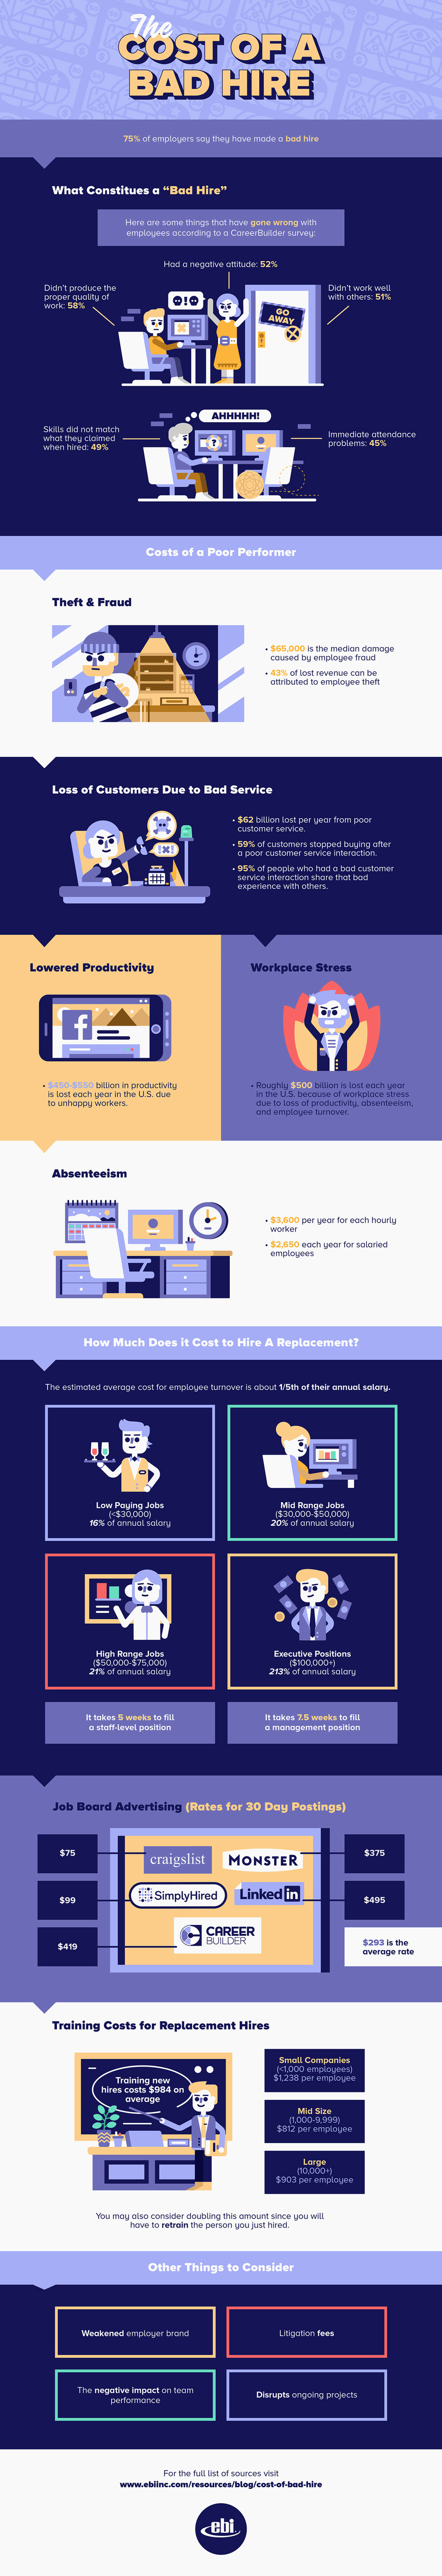 Cost Of A Bad Hire [Infographic]